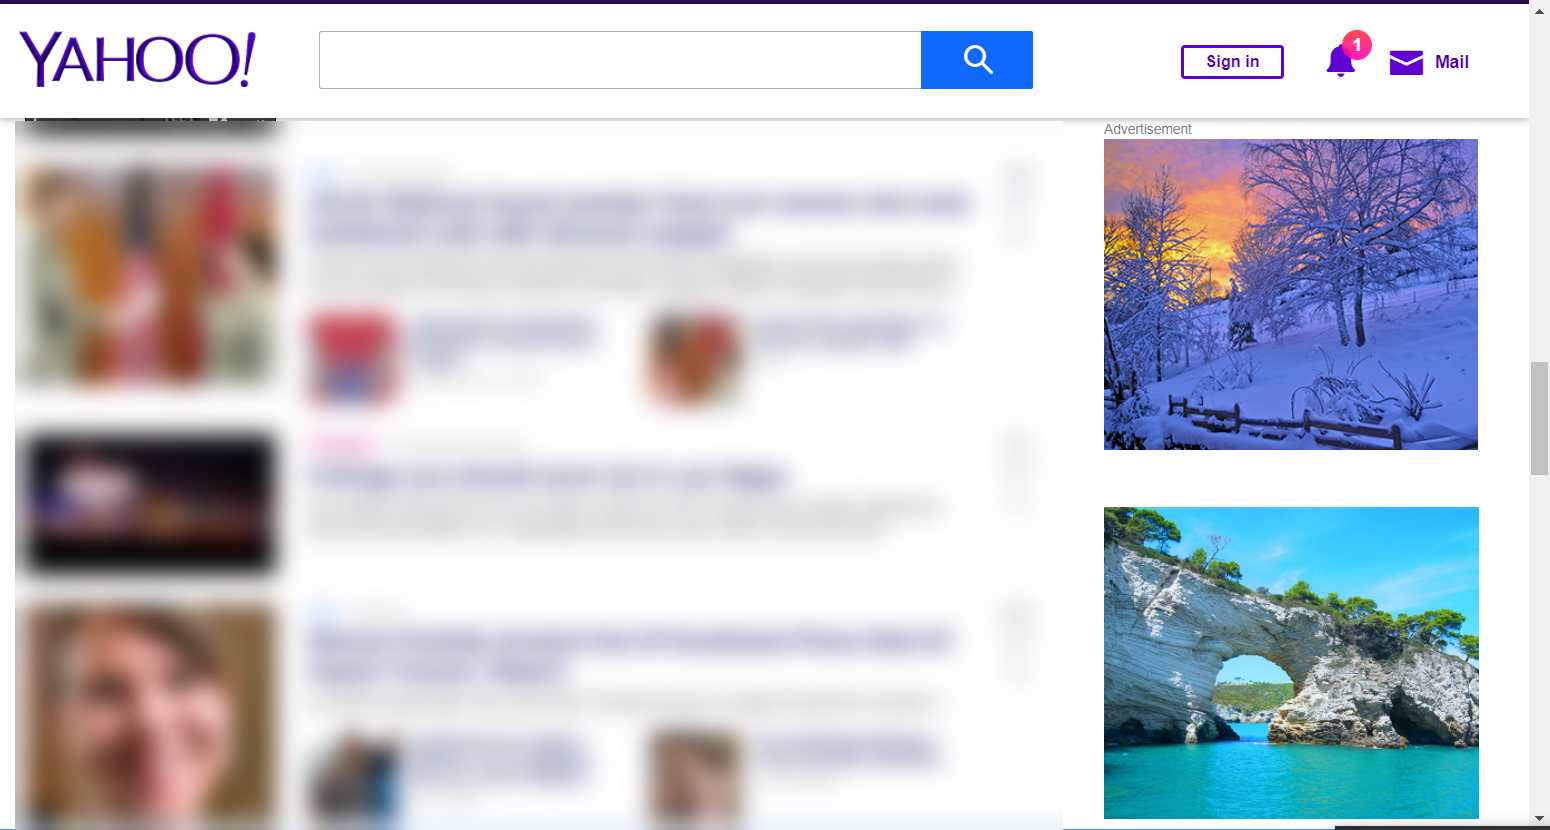 An example of ads replaced with pictures on Yahoo.com